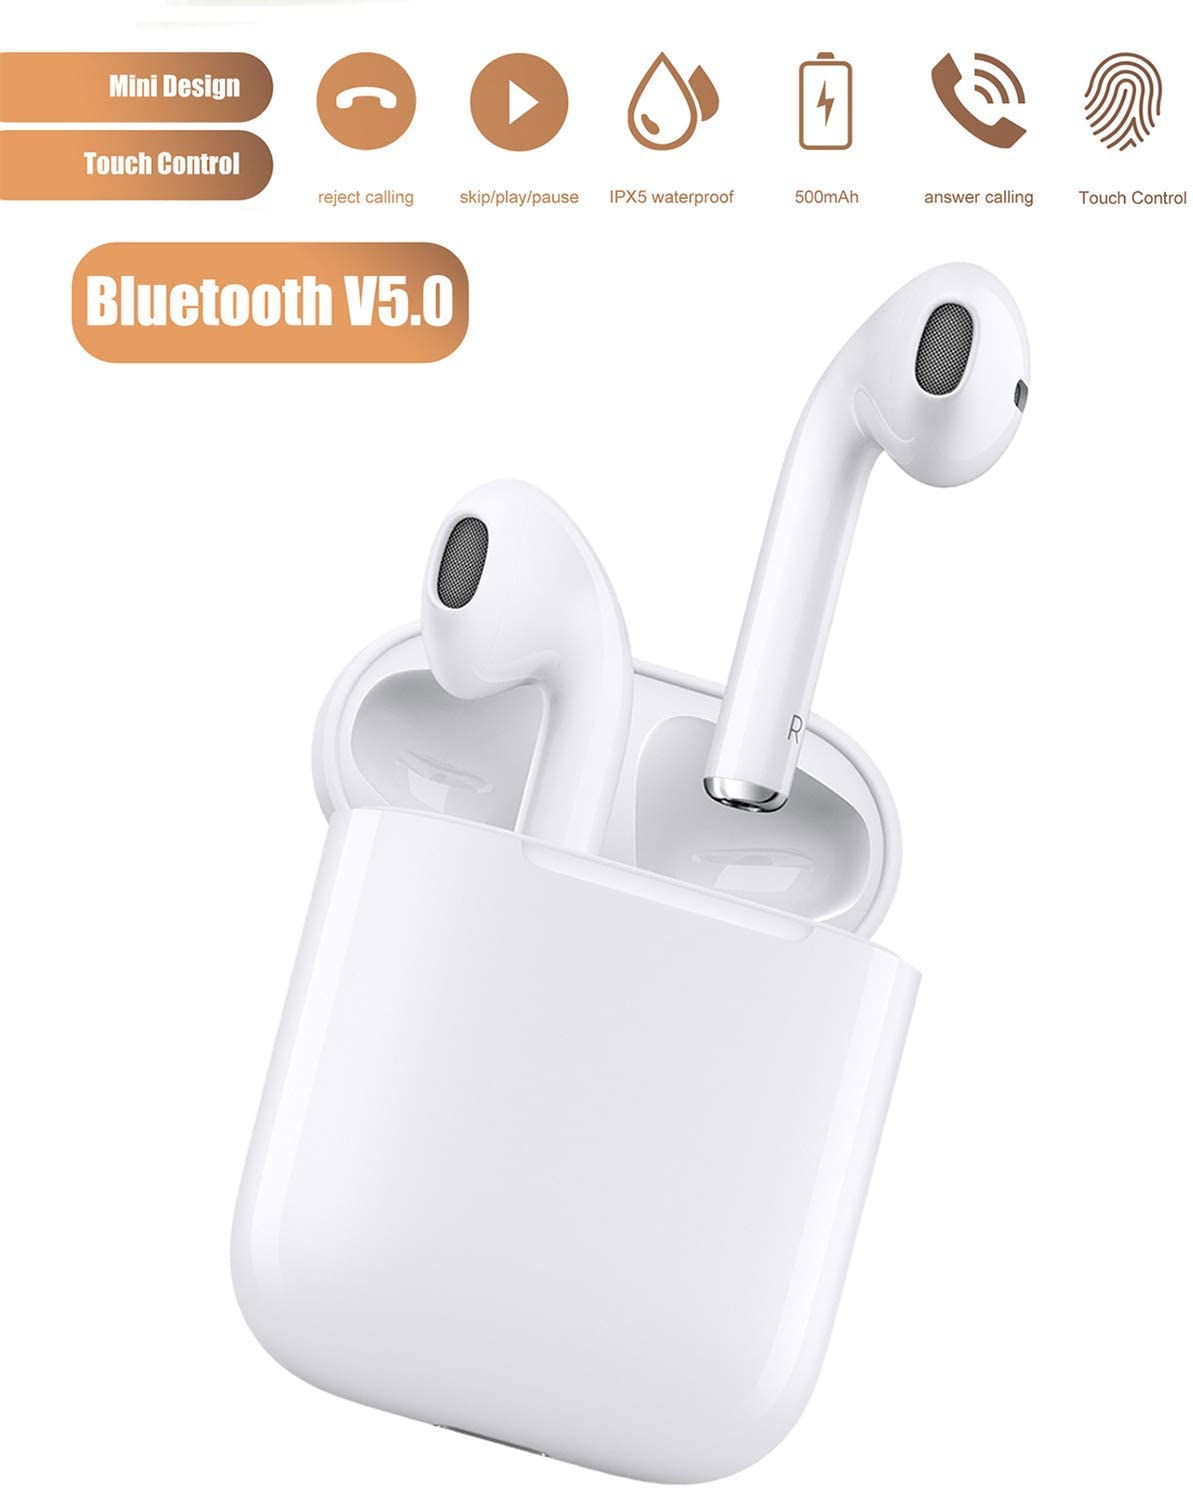 Wireless Earbuds Bluetooth 5.0 Headsets with 【24Hrs Charging Case】 IPX5 Waterproof 3D Stereo Headphones Pop-ups Auto Pairing Fast Charging Earphones for Android iPhone Samsung